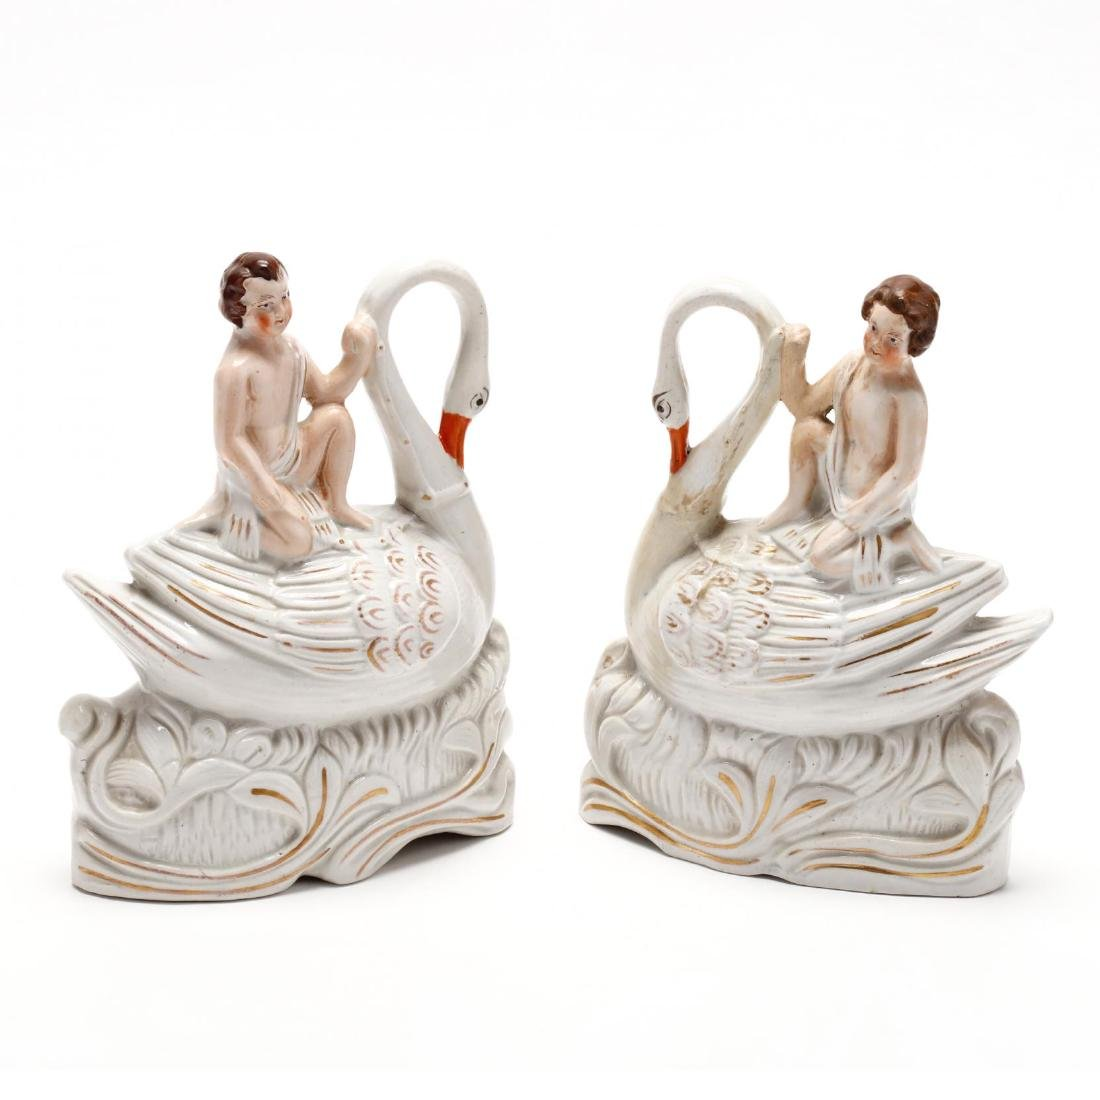 Pair of Staffordshire Figures on Swans